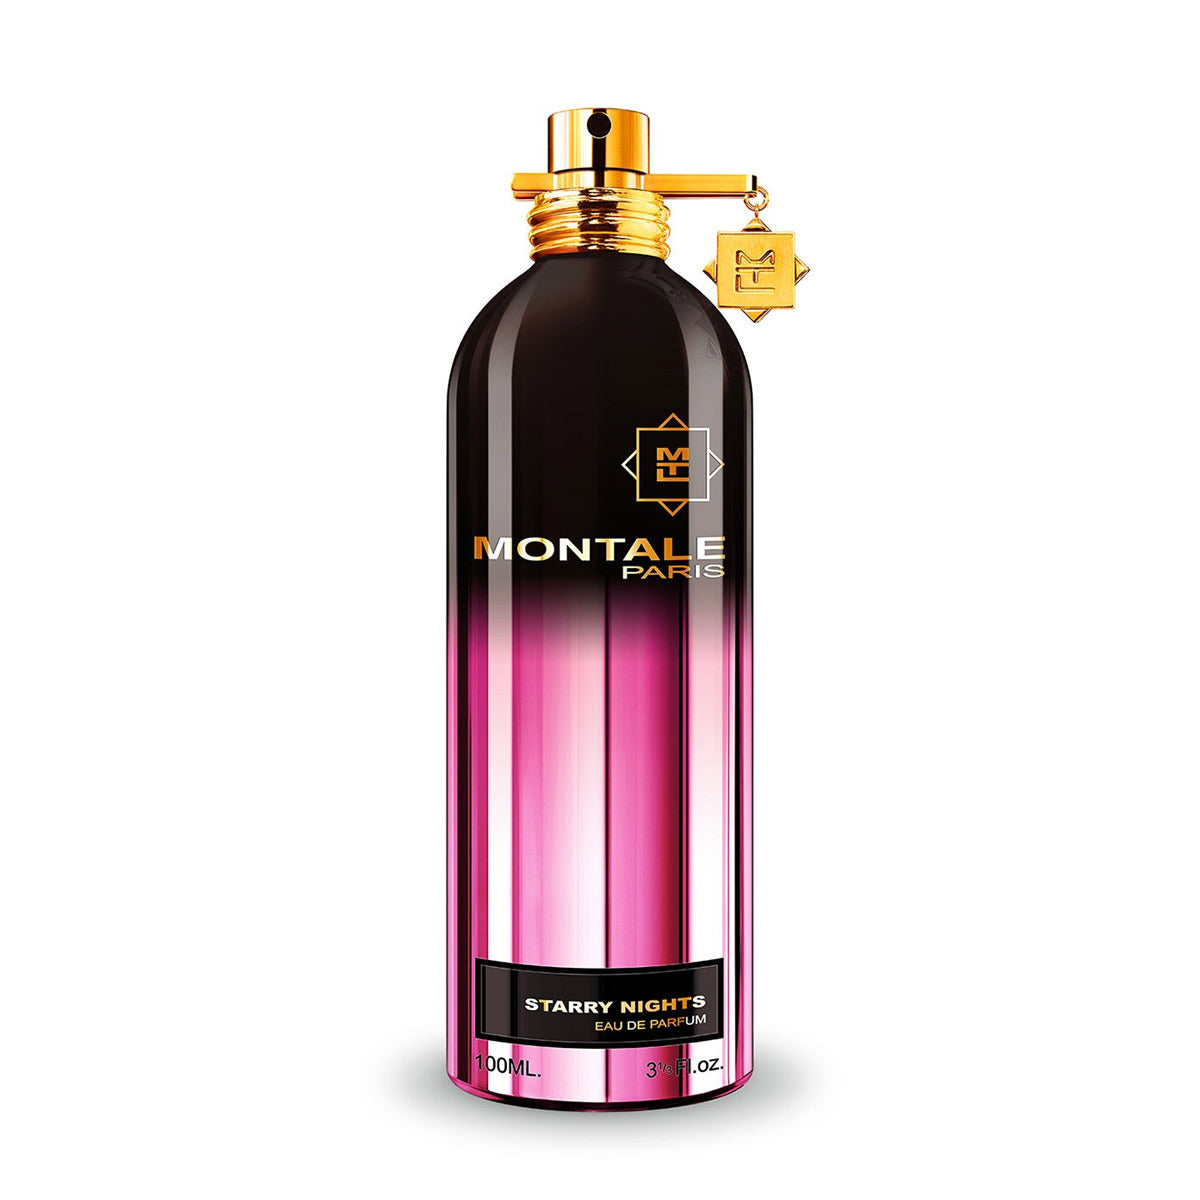 Niche Fragrance for Summer | Montale Paris Starry Night Eau de Parfum